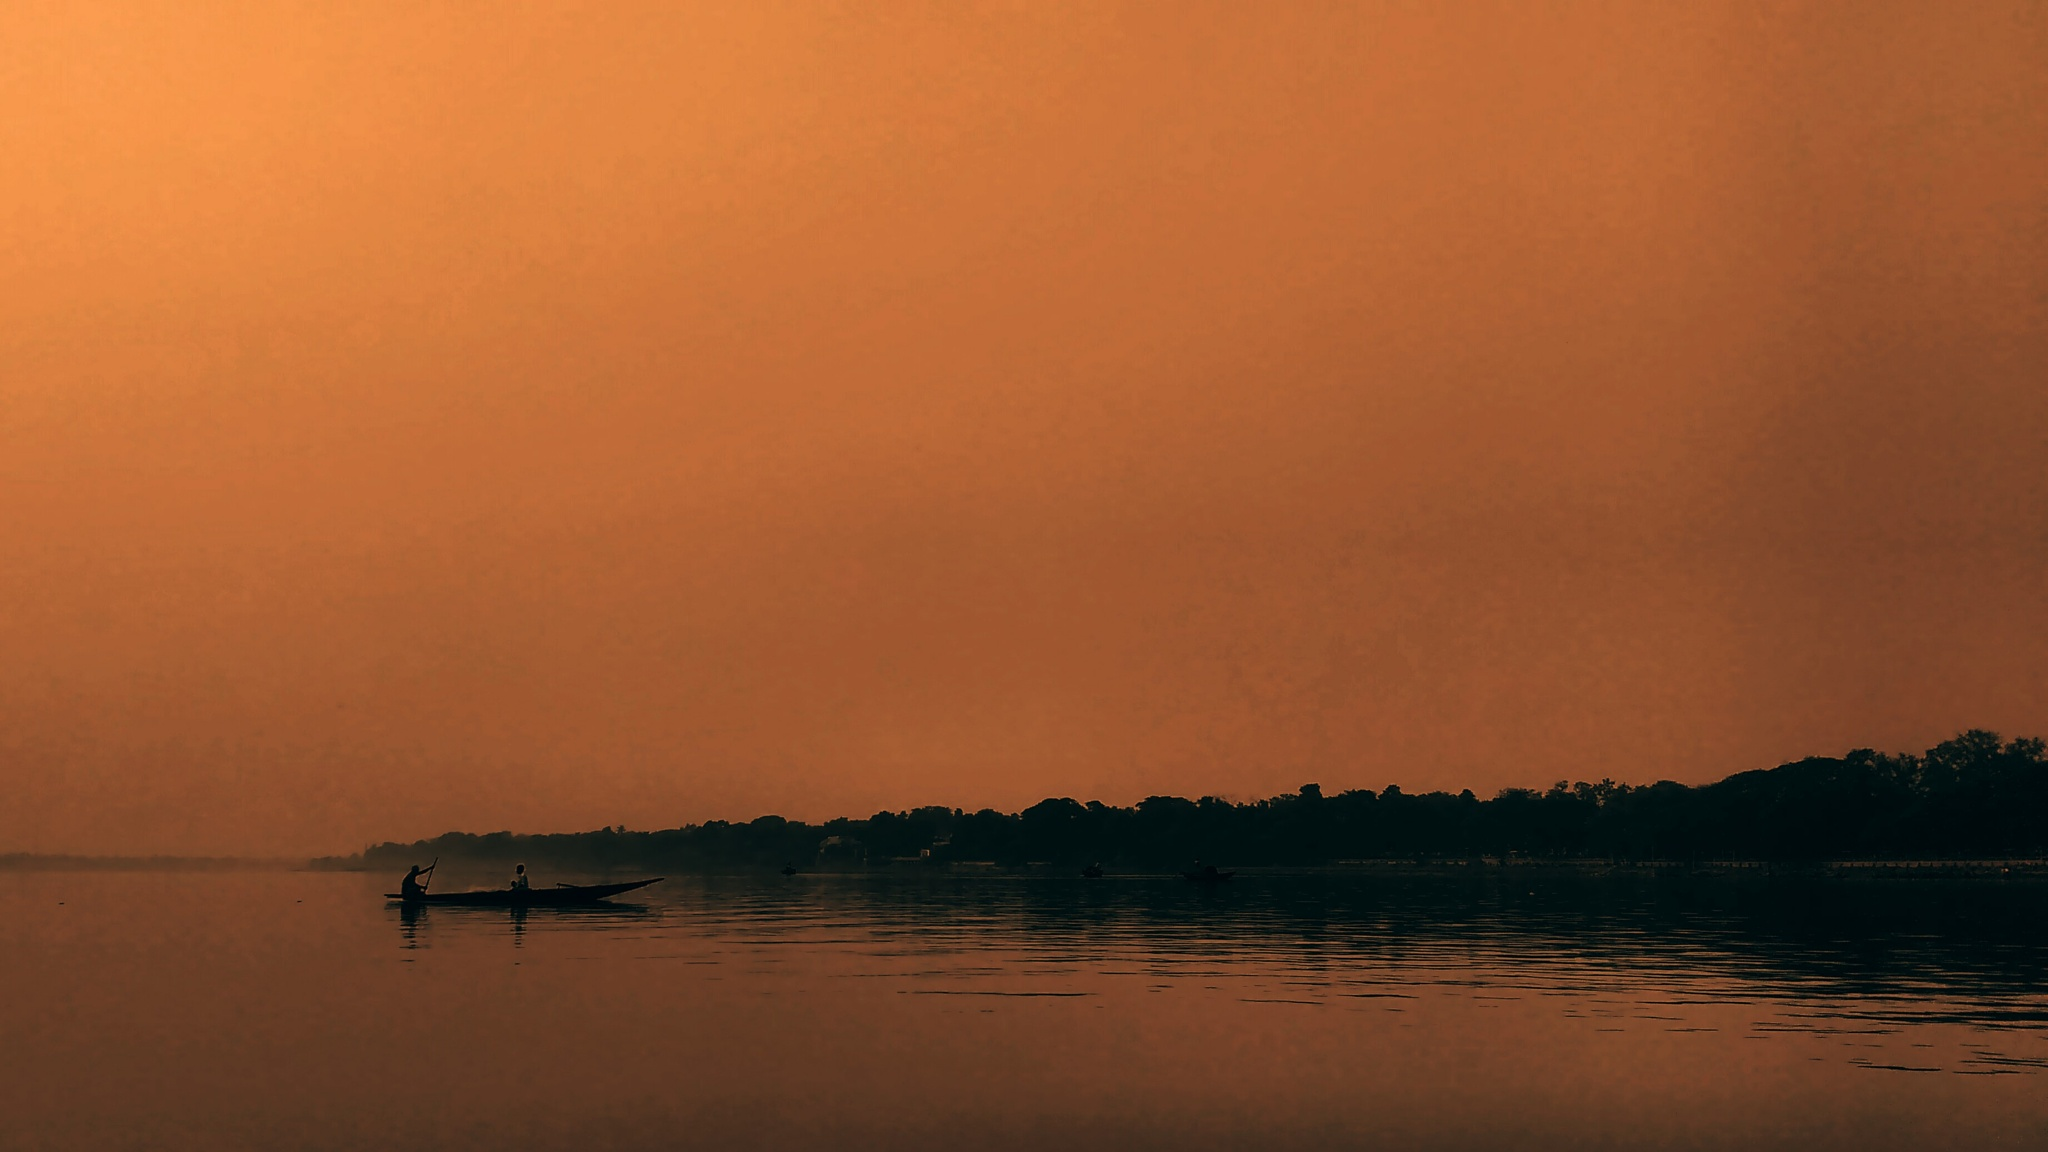 Gliding in tranquil. by SabujGhosh